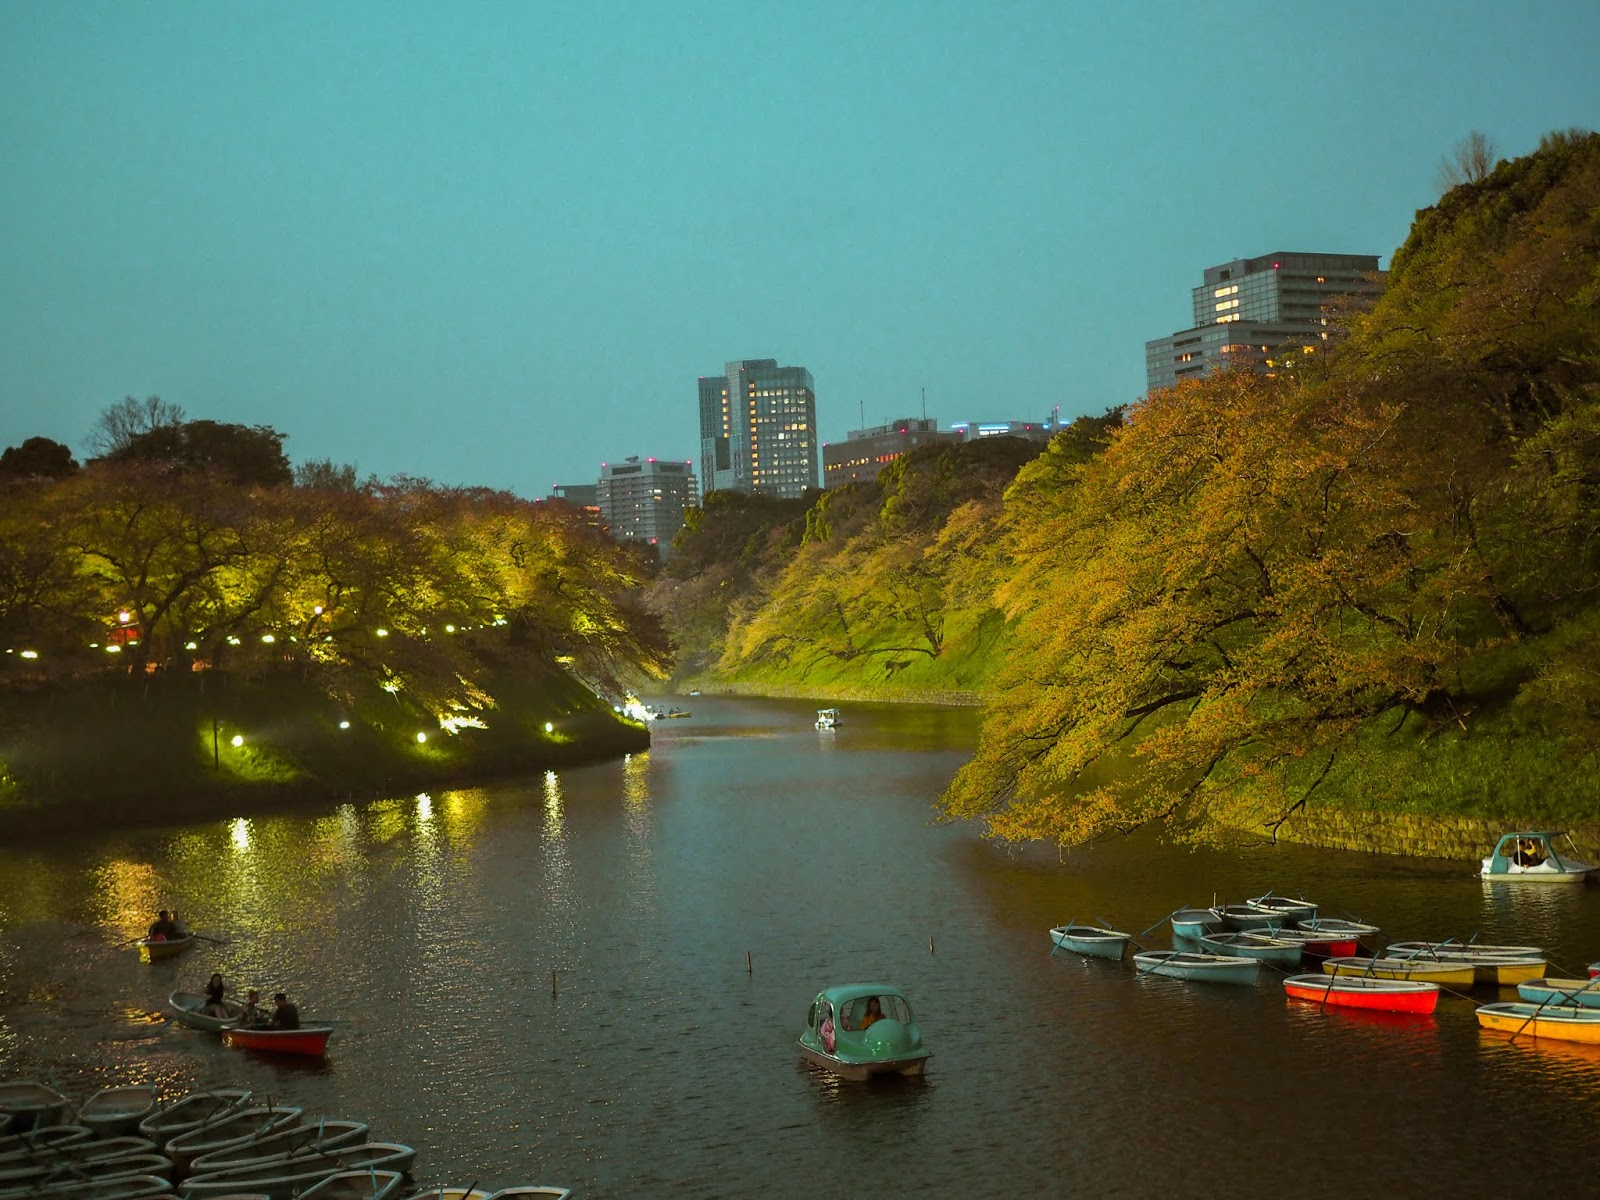 Chidorigafuchi at night